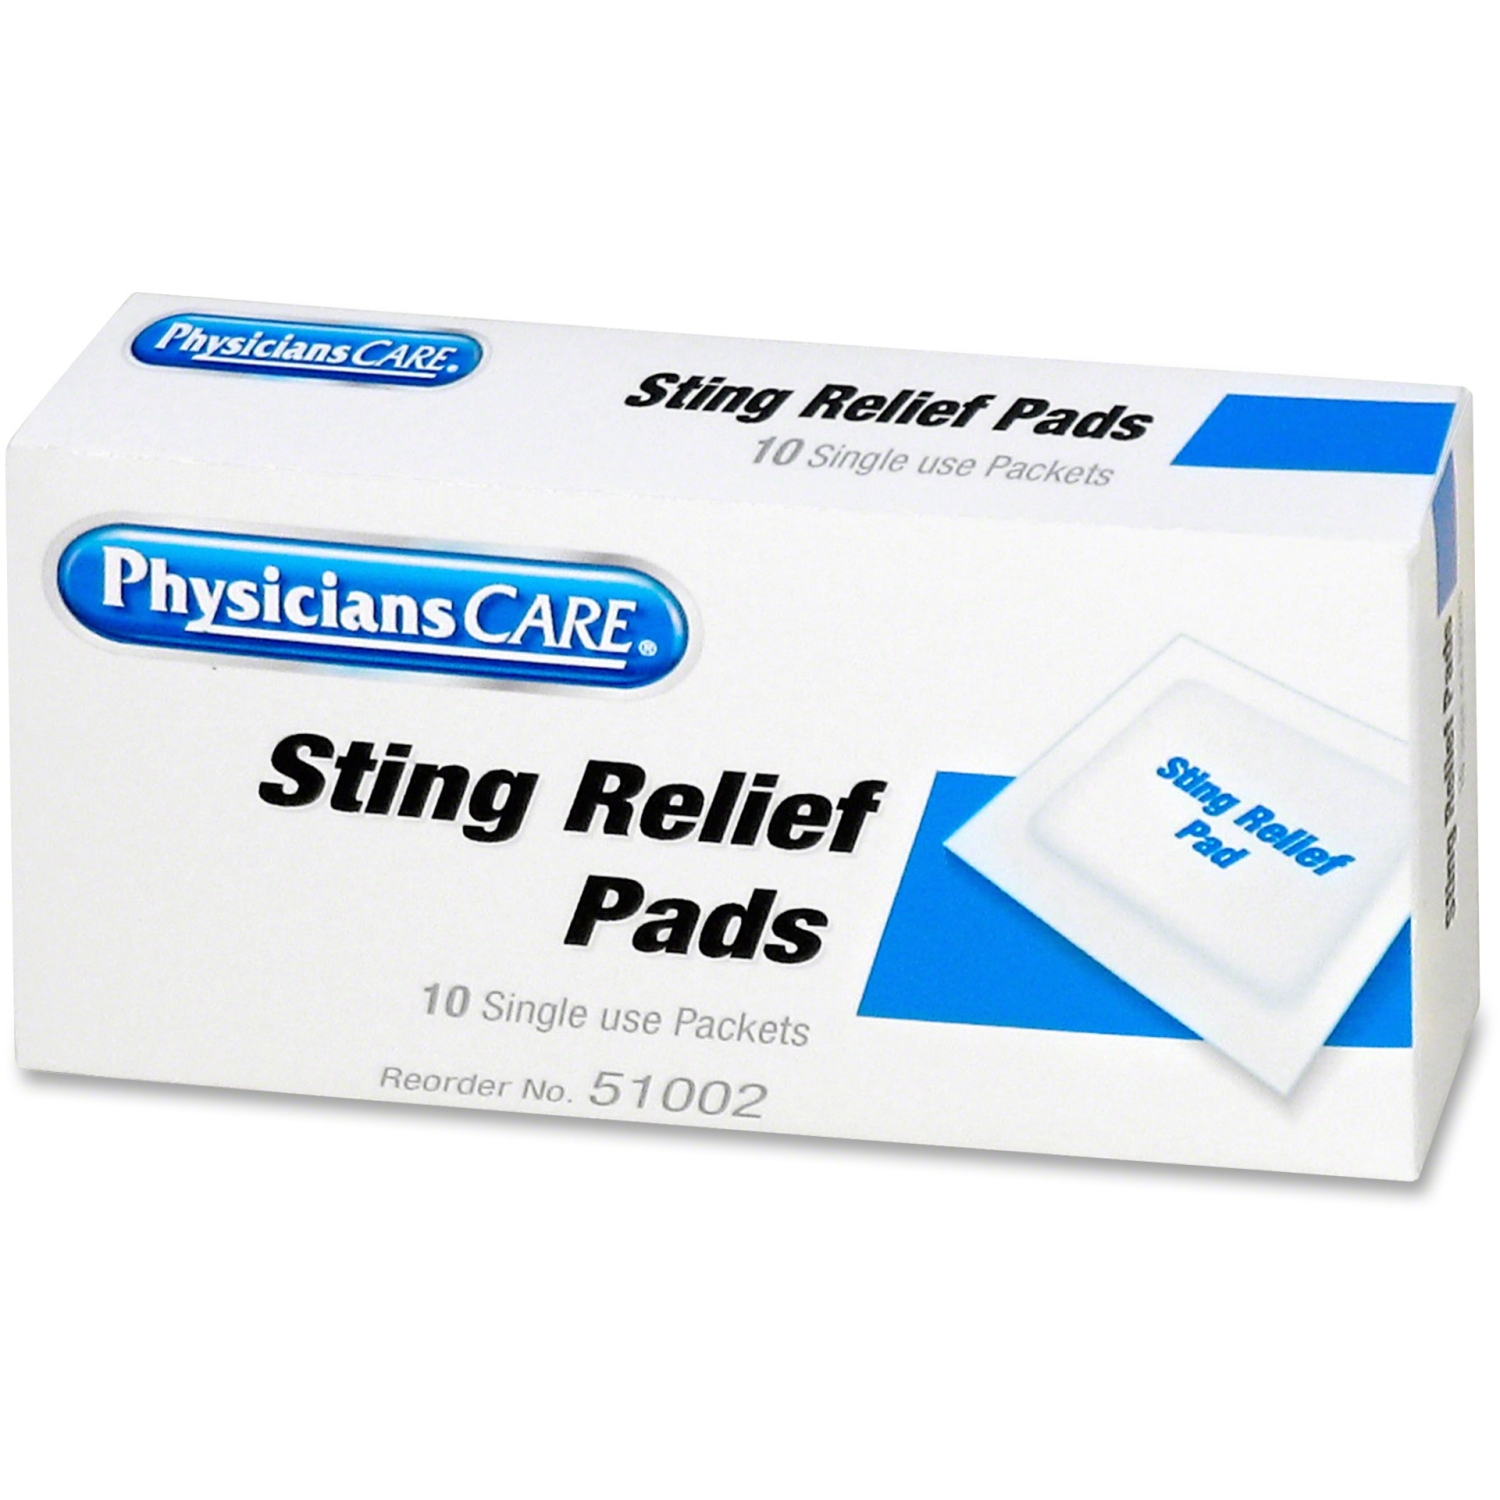 PhysiciansCare by First Aid Only First Aid Sting Relief Pads, 10/Box